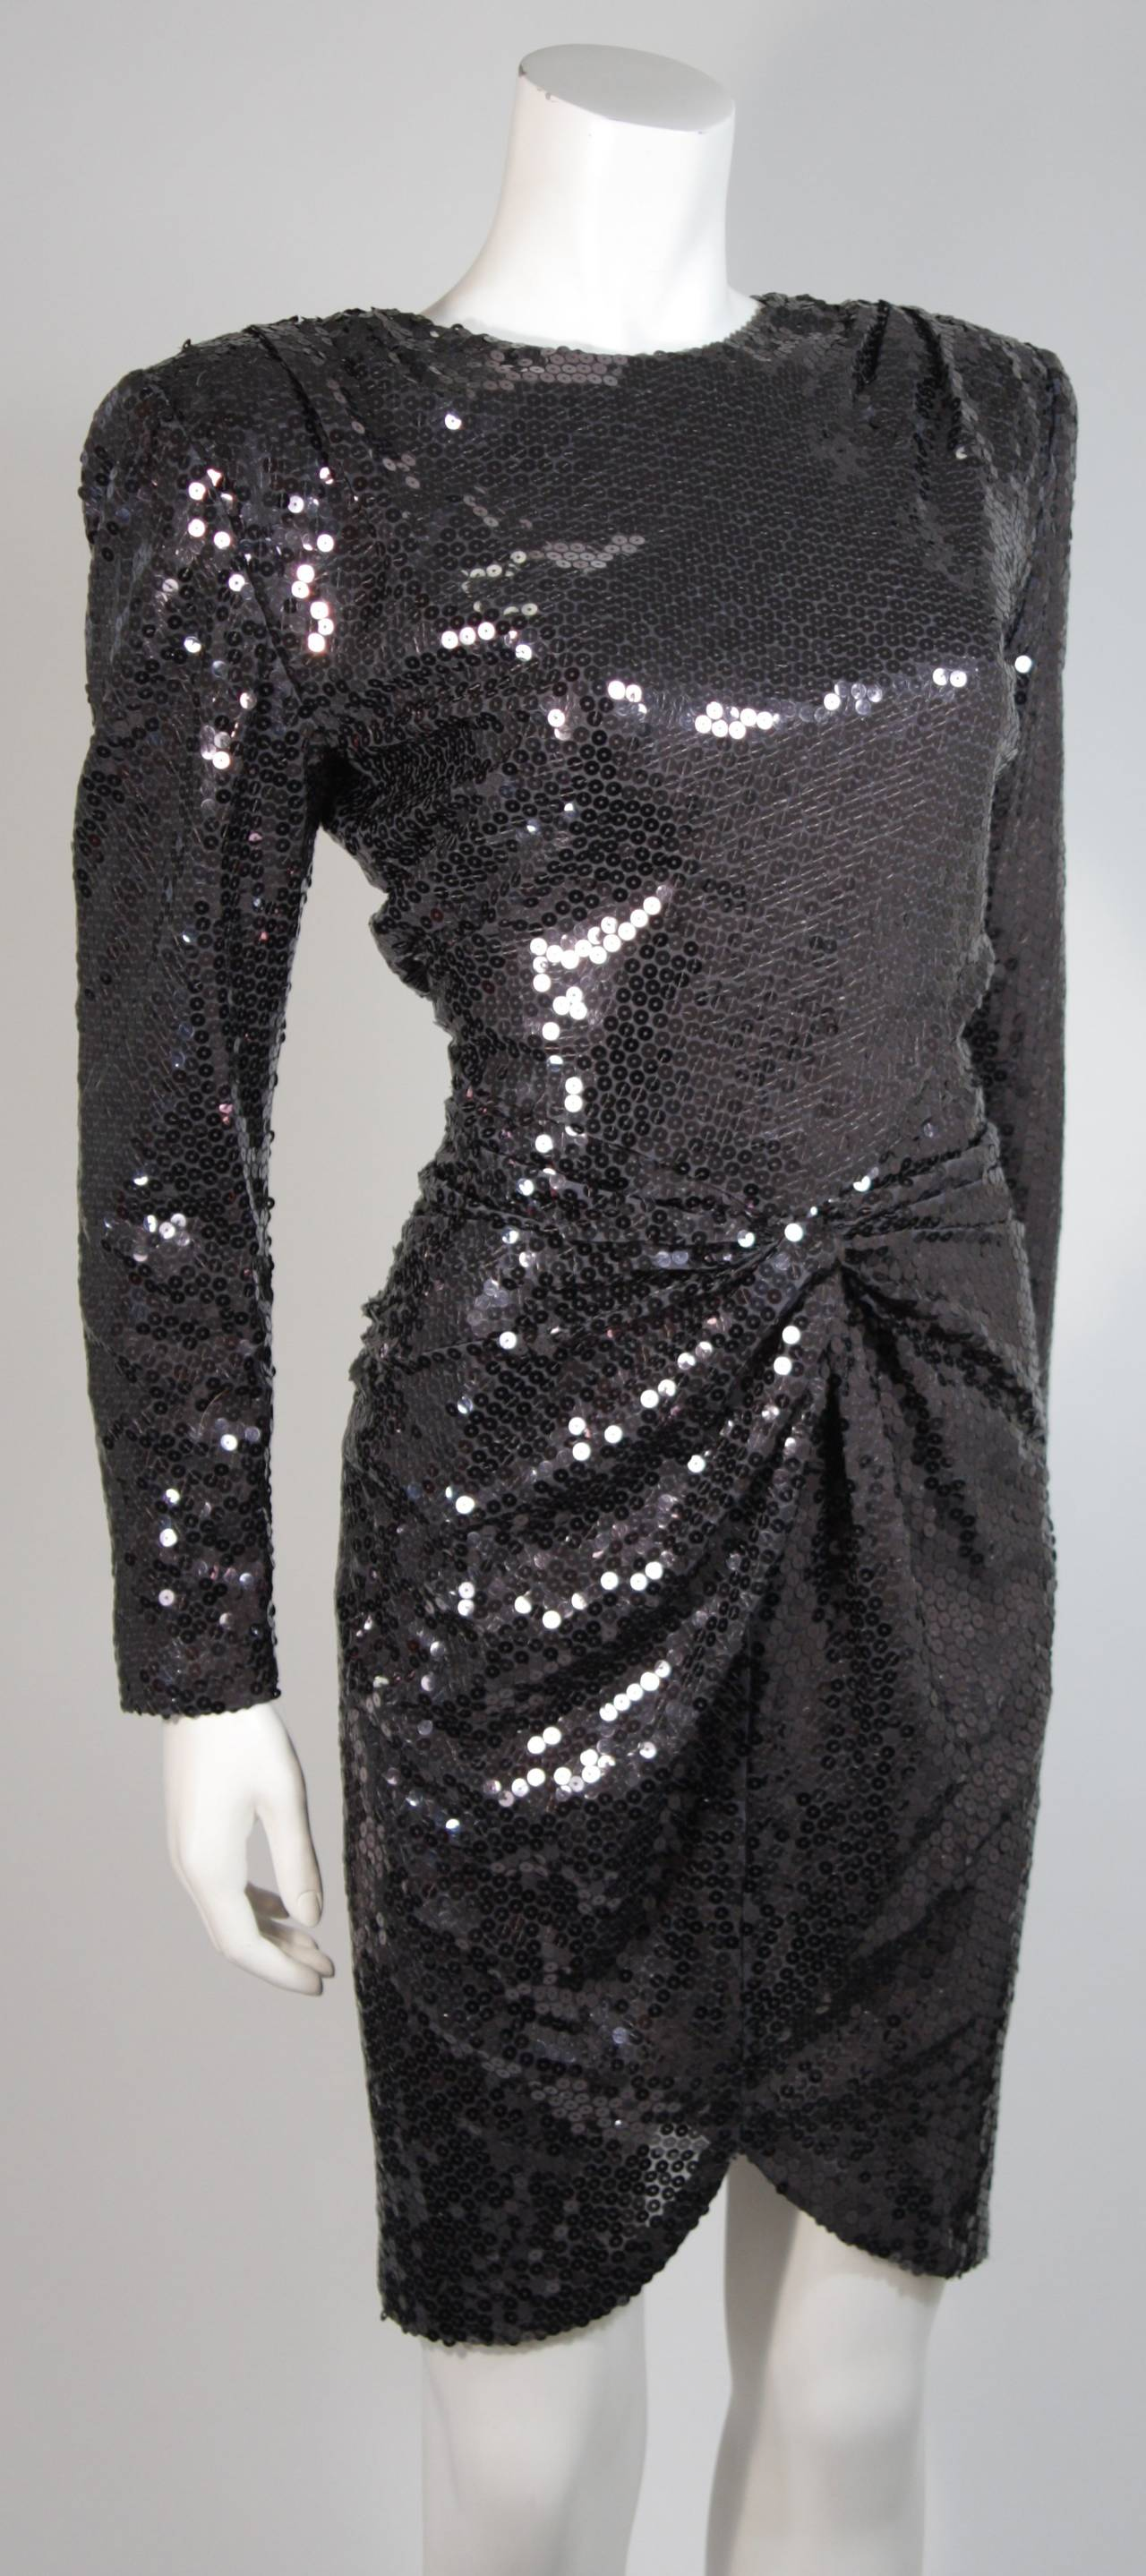 Vicky Tiel Black Iridescent Sequin Cocktail Dress Size 38 5